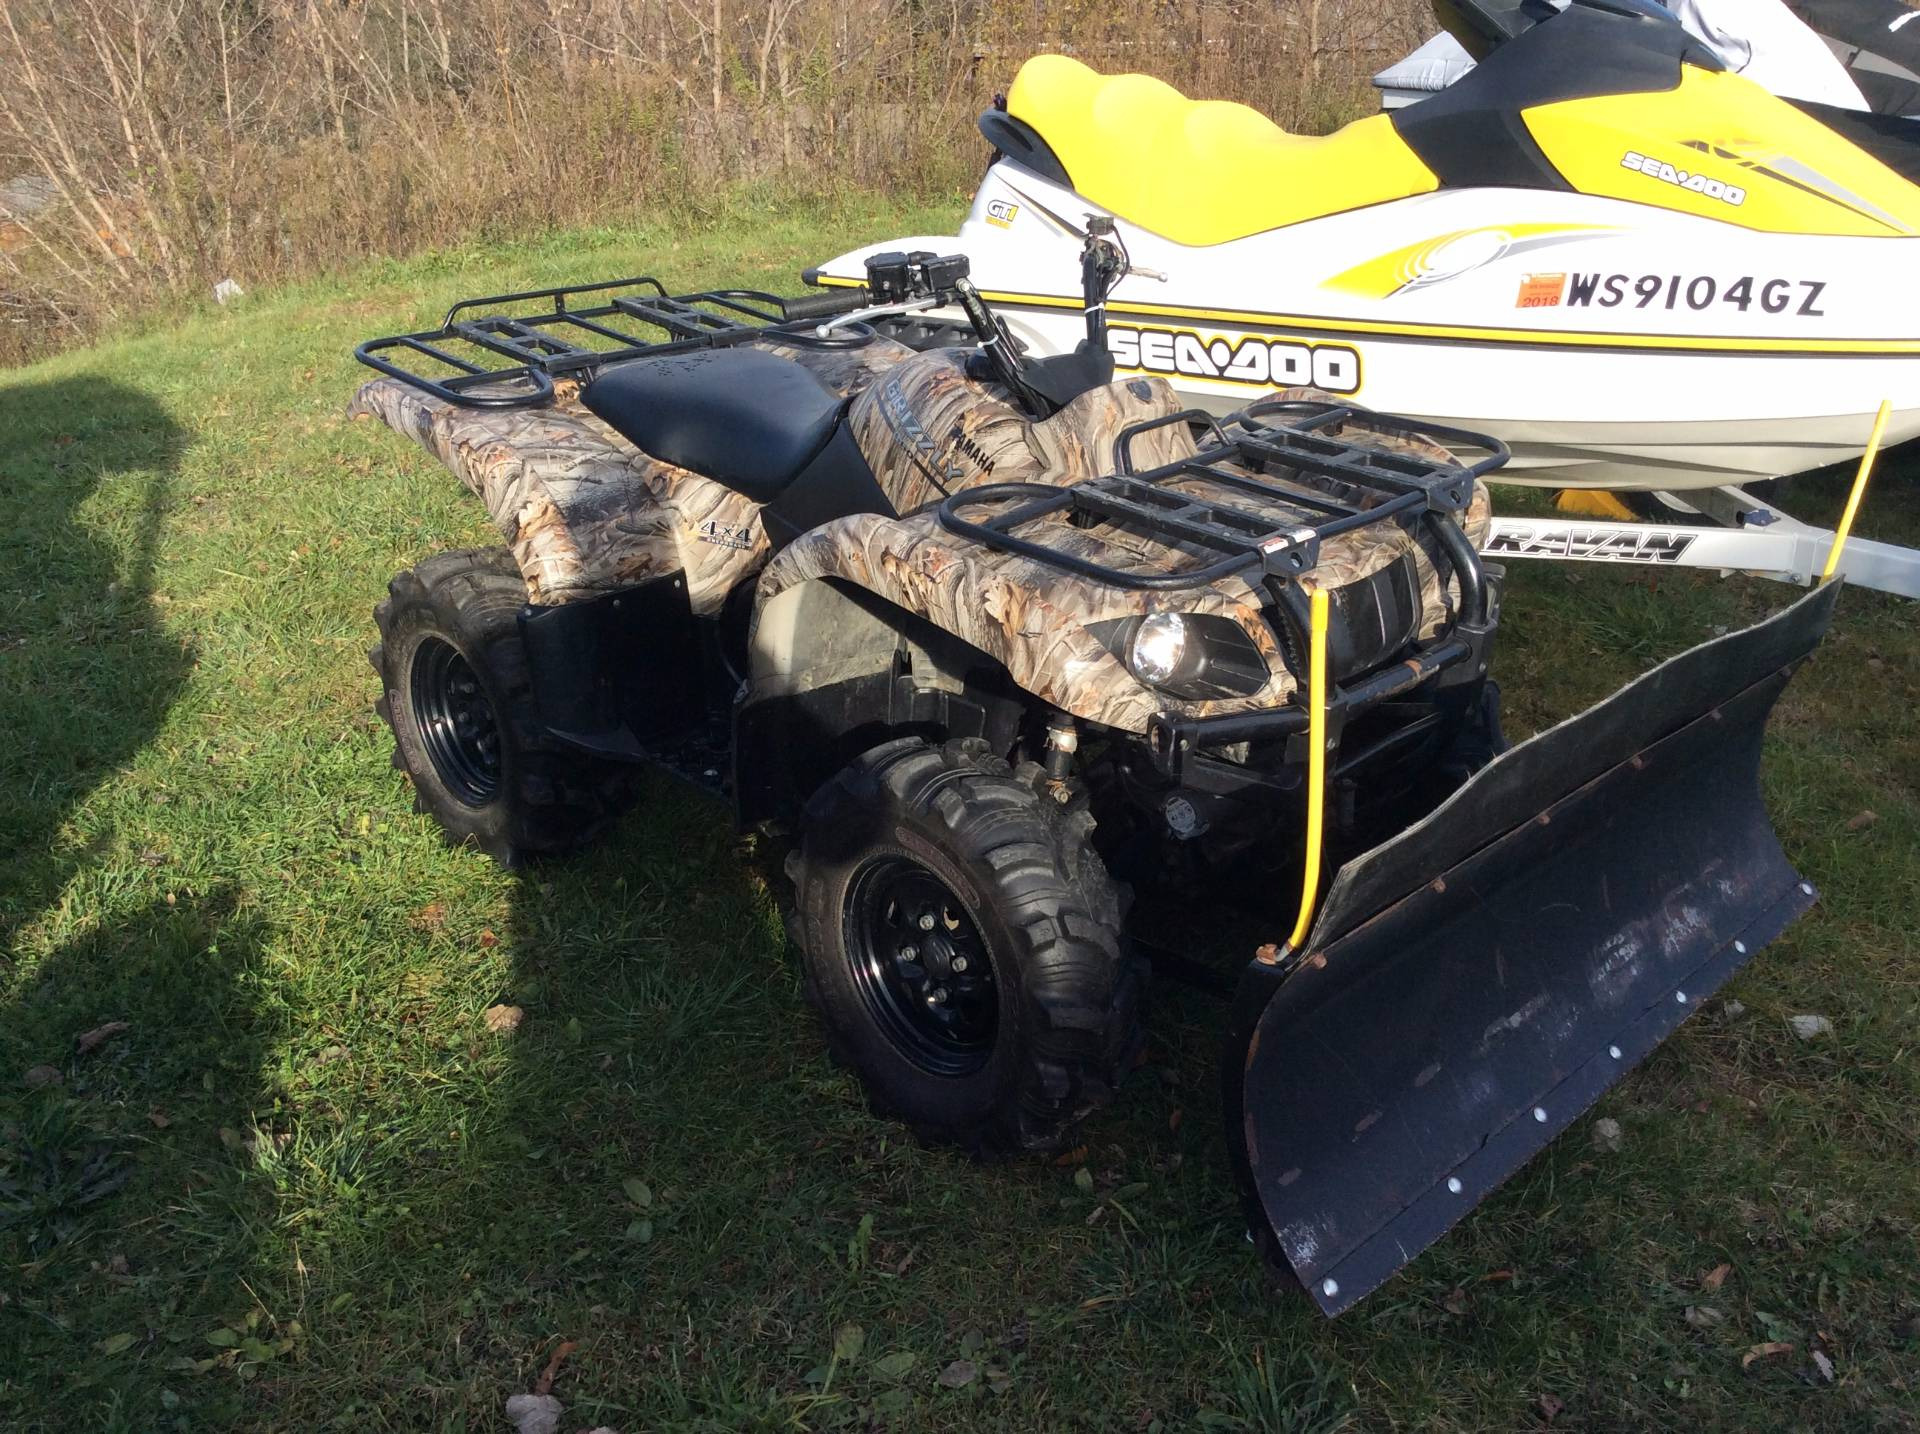 2004 yamaha grizzly 660 for sale for 2004 yamaha grizzly 660 value